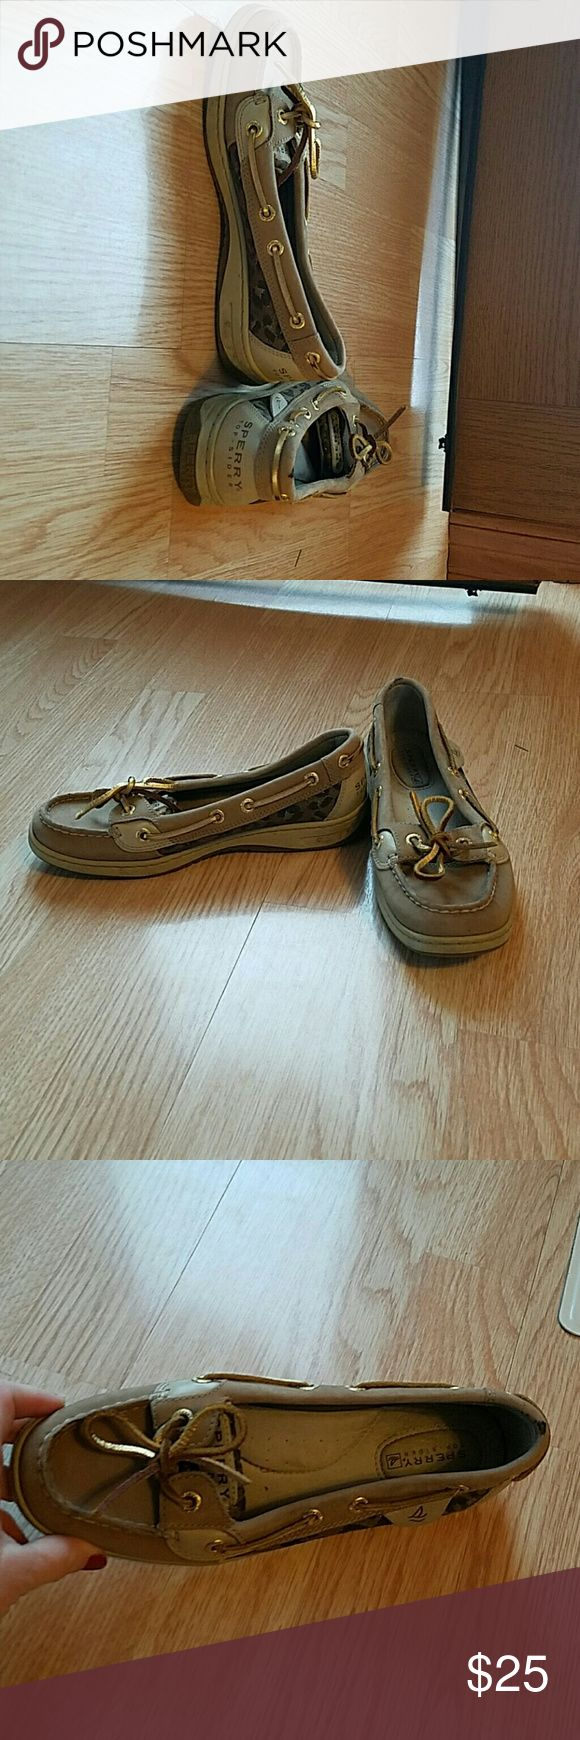 Women's Sperry's Cute! Good used condition. Need to be cleaned up. Sperry Top-Sider Shoes